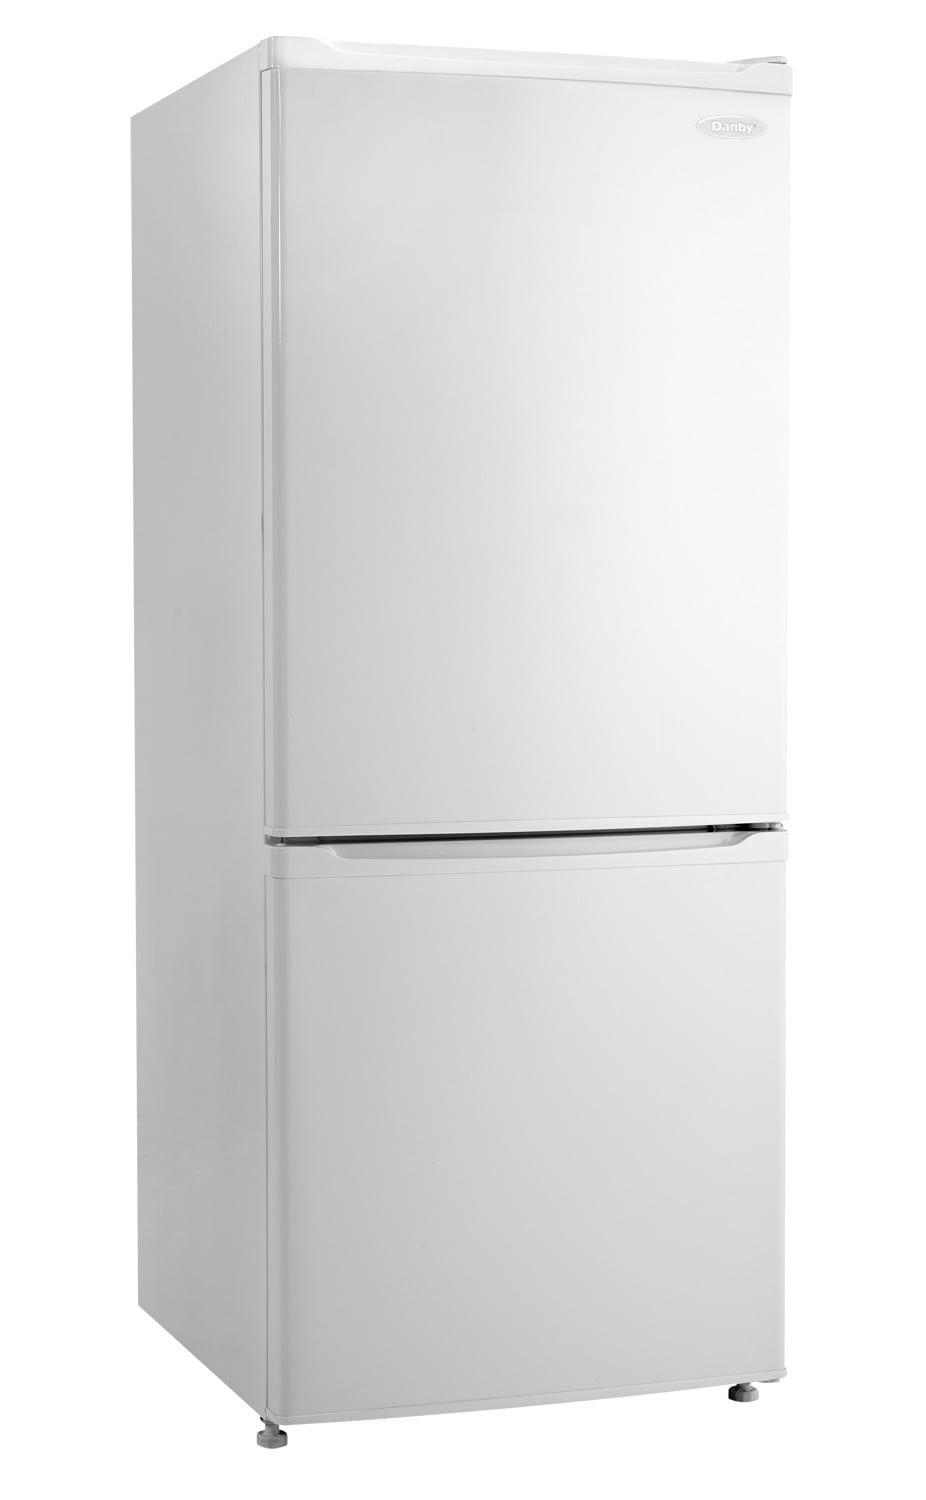 Danby White Bottom-Mount Refrigerator (9.2 Cu. Ft.) - DFF092C1WDB